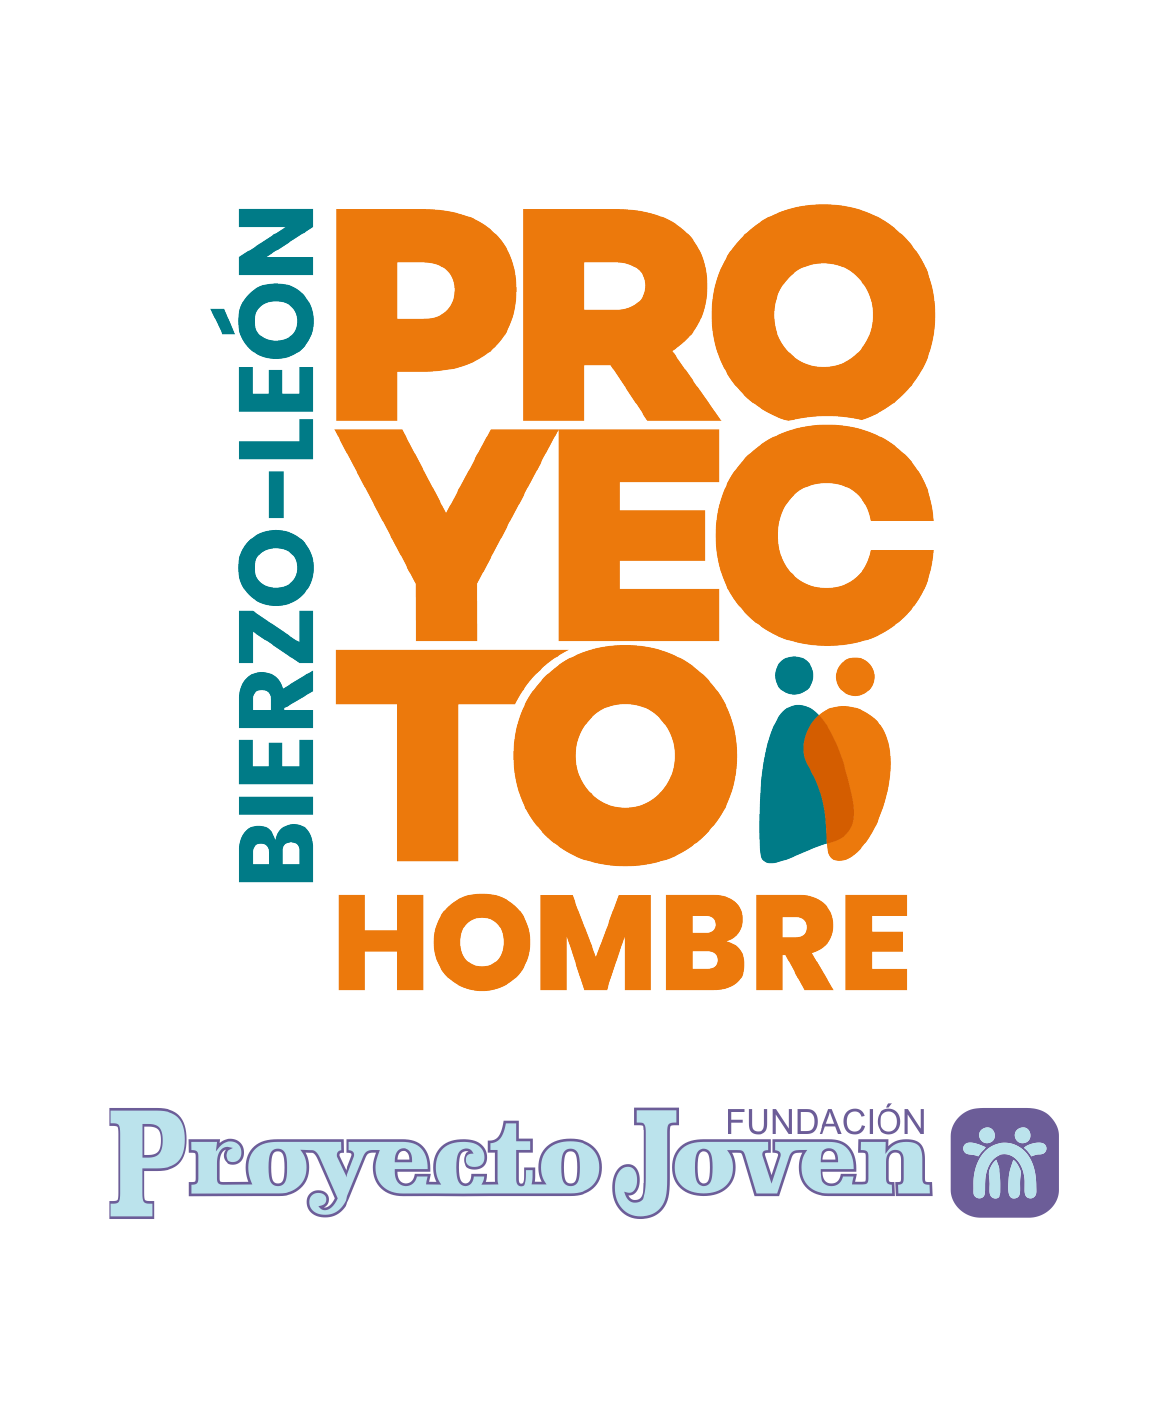 https://www.proyectojoven.org/wp-content/uploads/2020/08/logotipos-footer.png